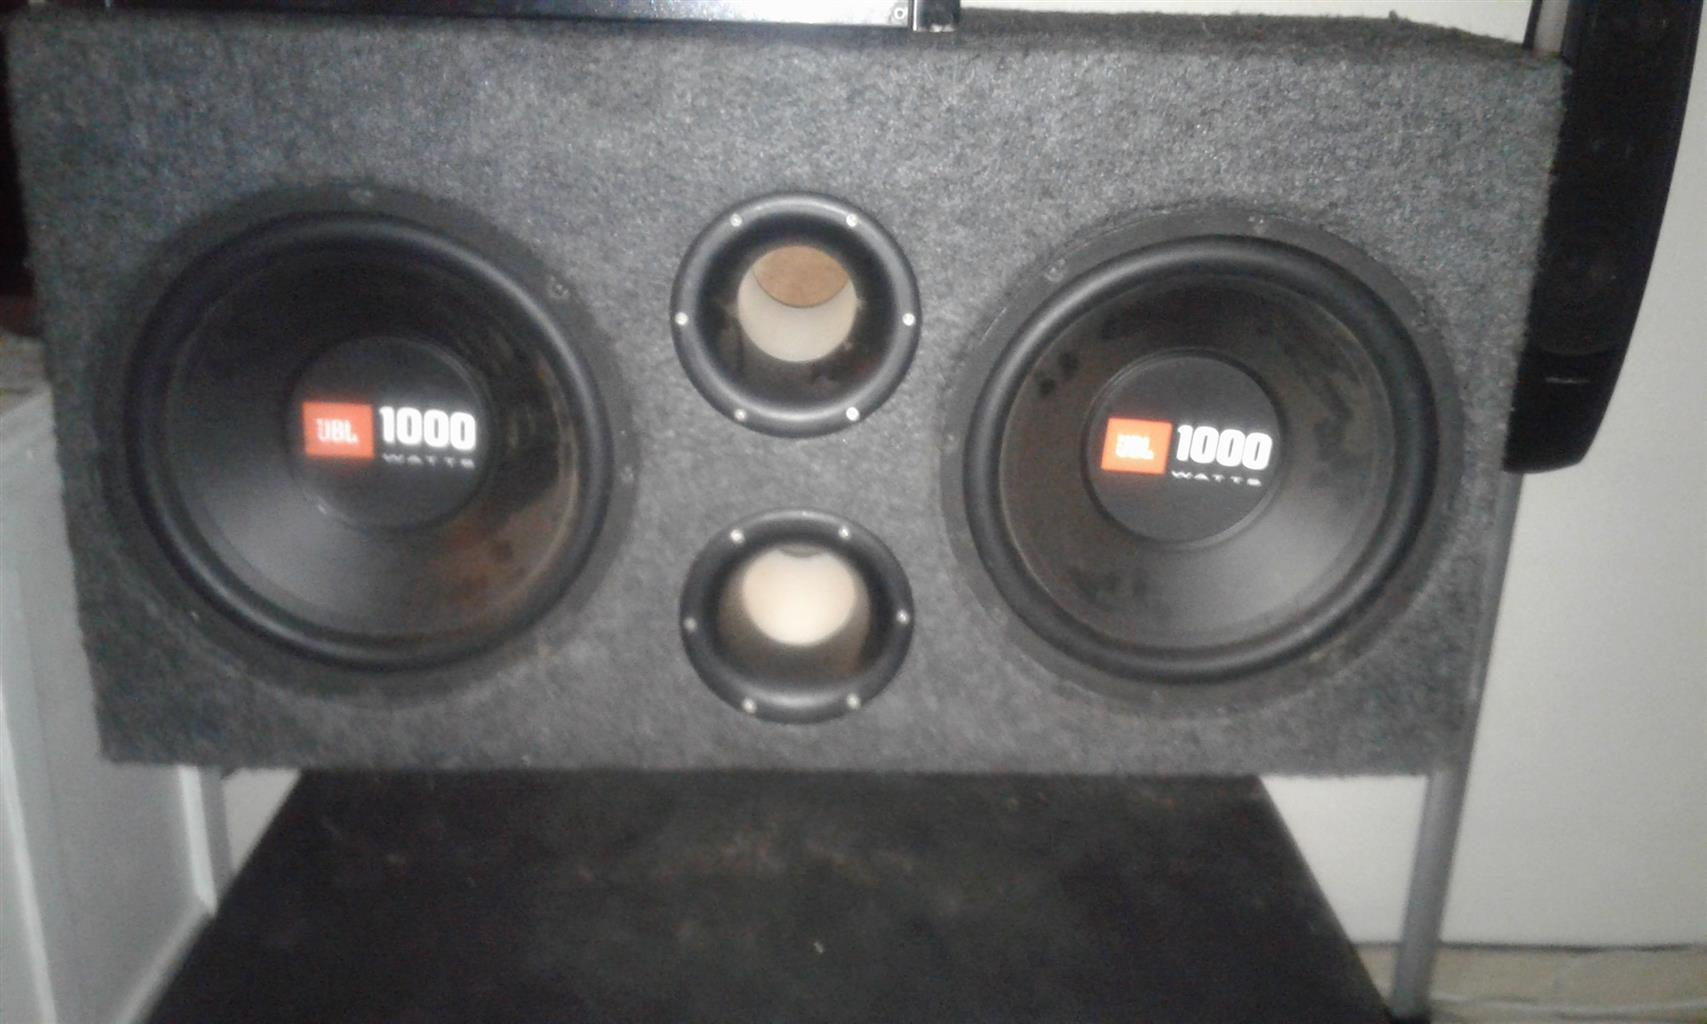 2x 1000 watt UBL subs for sale